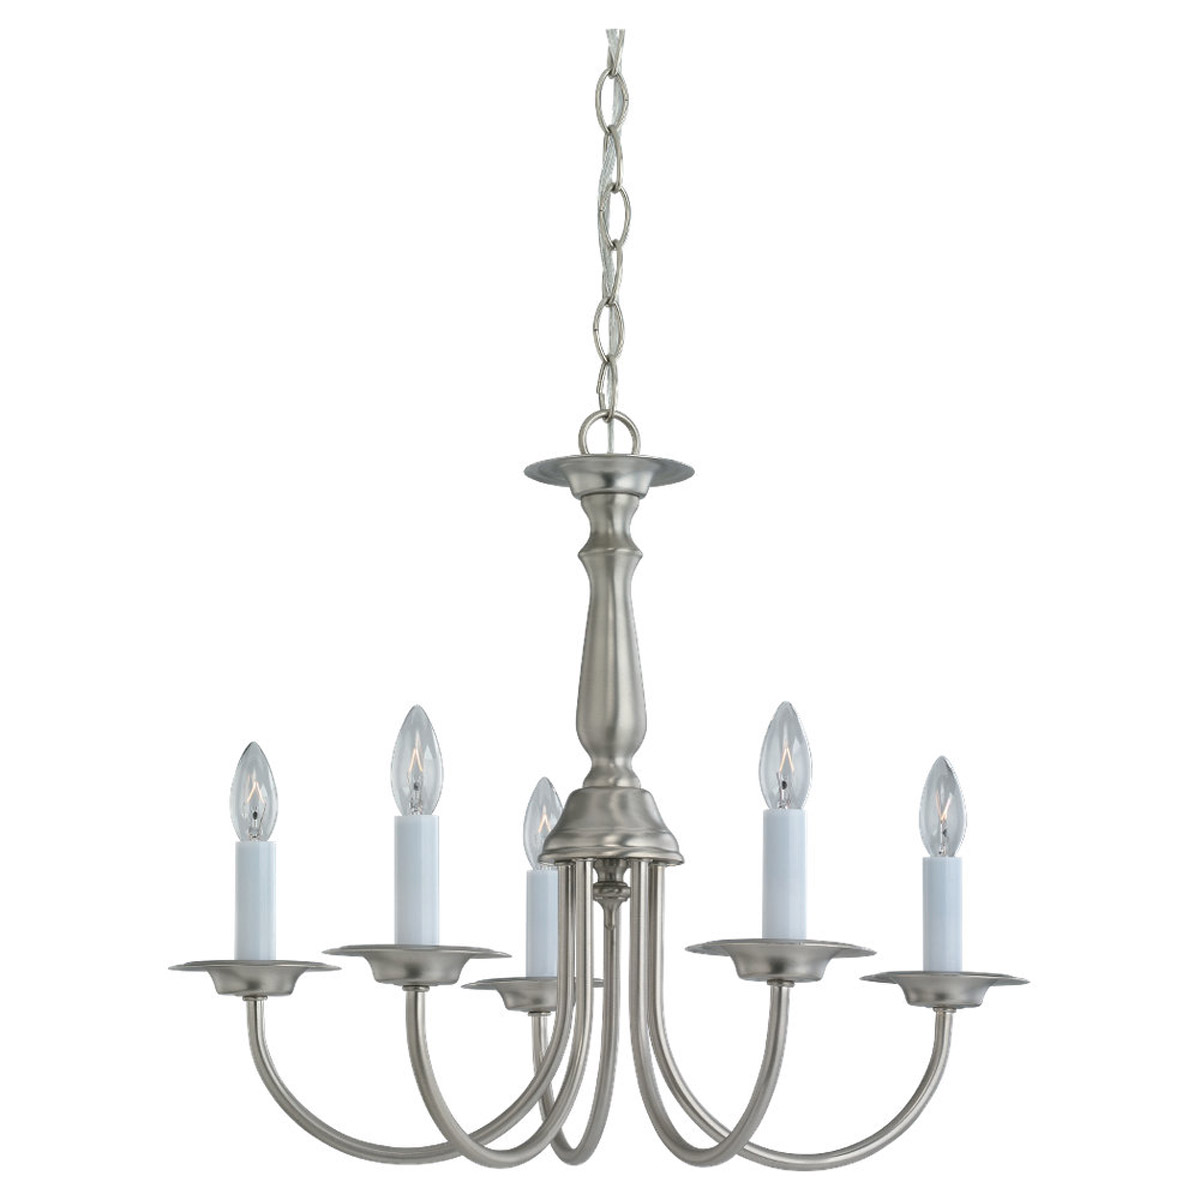 Brushed Nickel Traditional Chandeliers